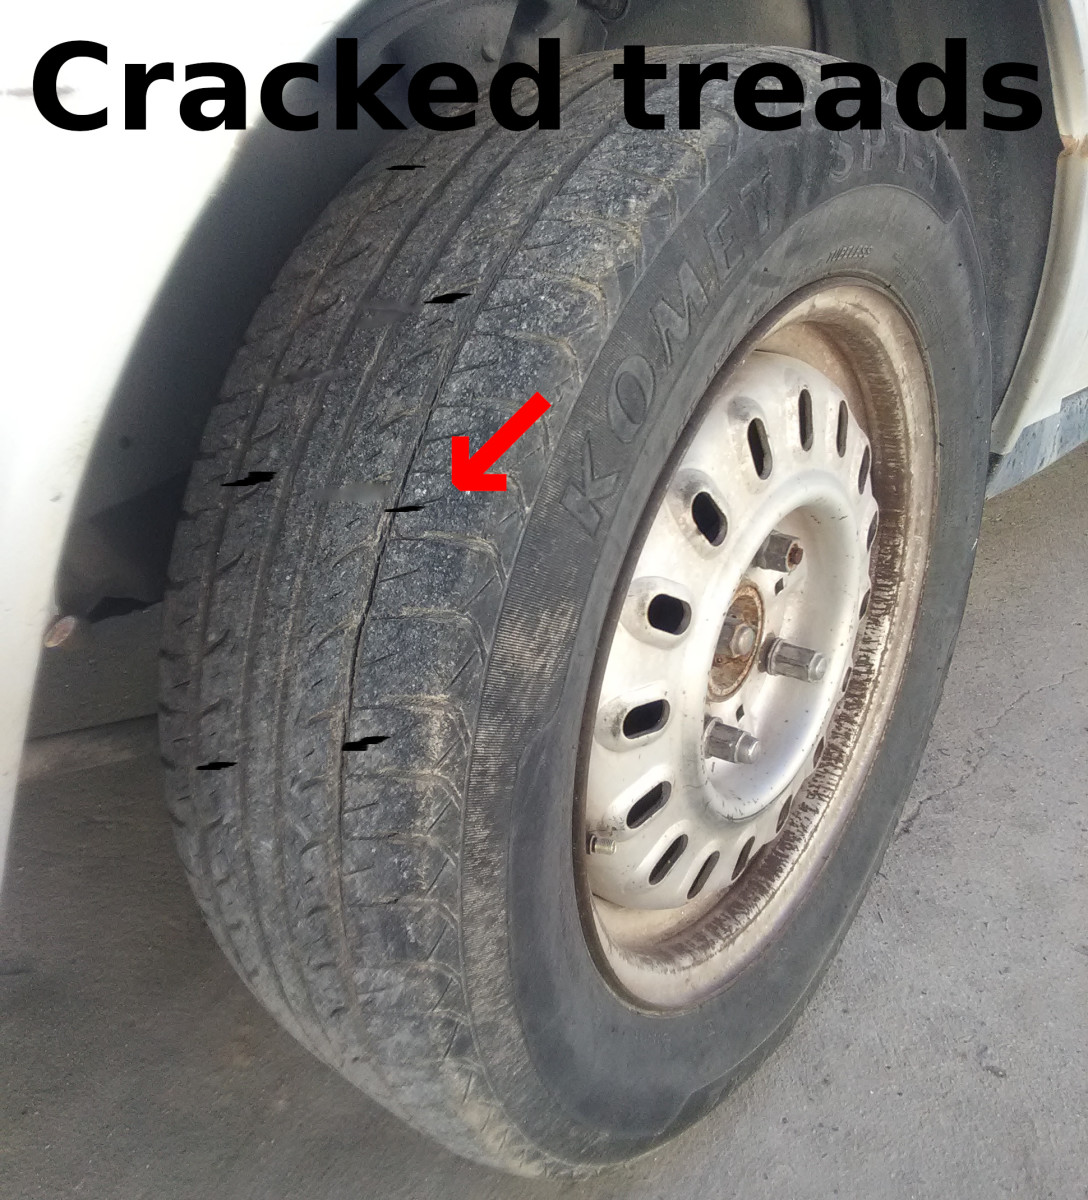 Underinflation or excessive speed can crack a tire's treads.